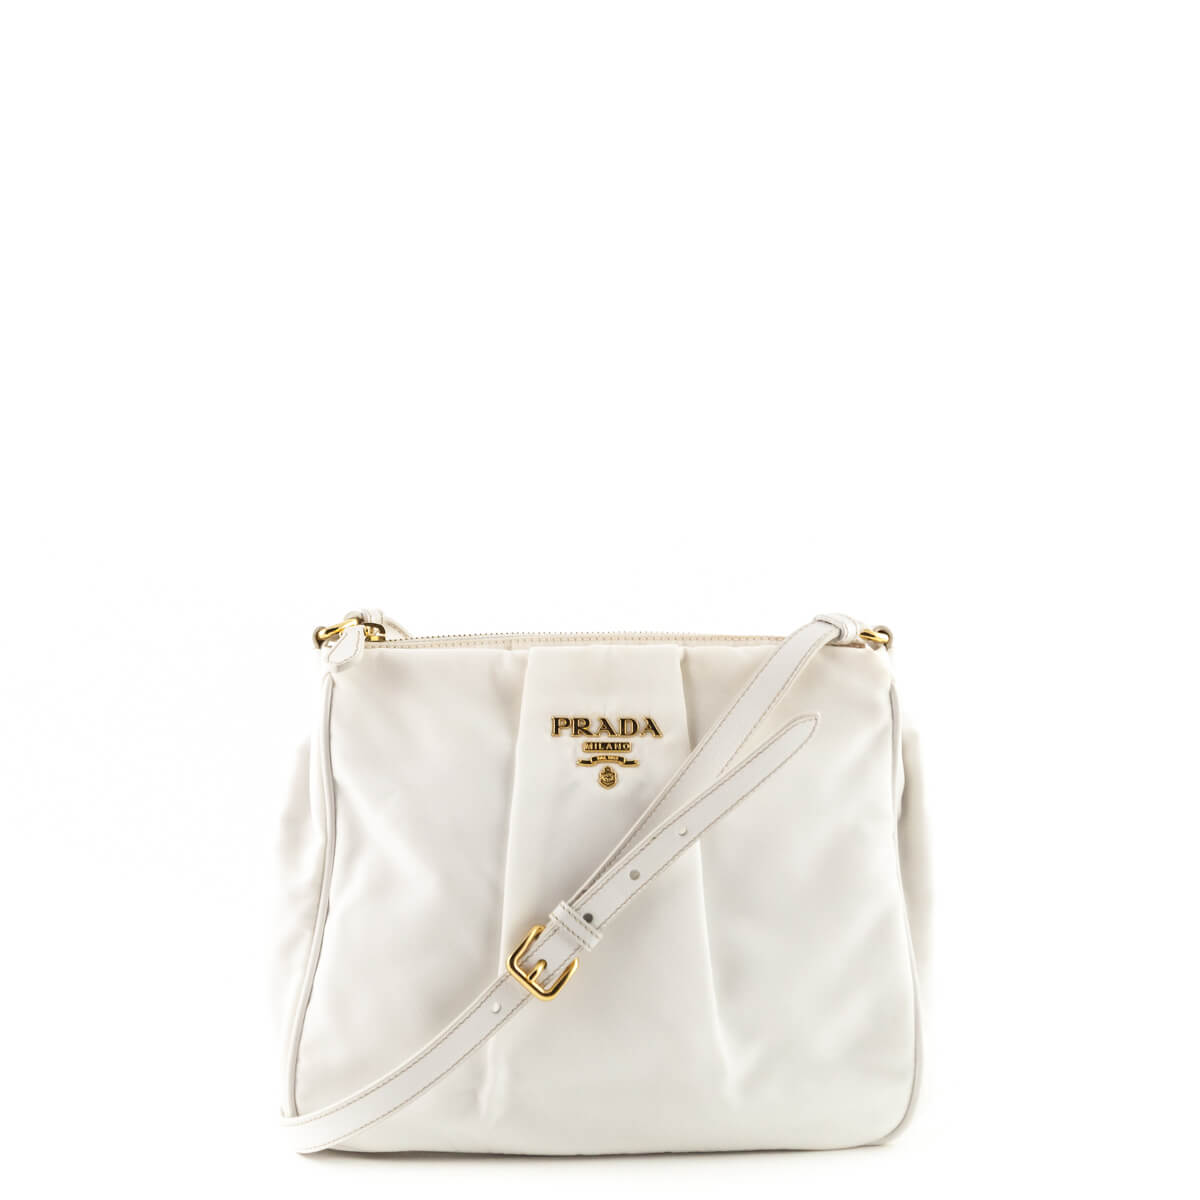 22f8a767b3f6 Prada White Nylon Pleated Crossbody Bag - LOVE that BAG - Preowned  Authentic Designer Handbags ...